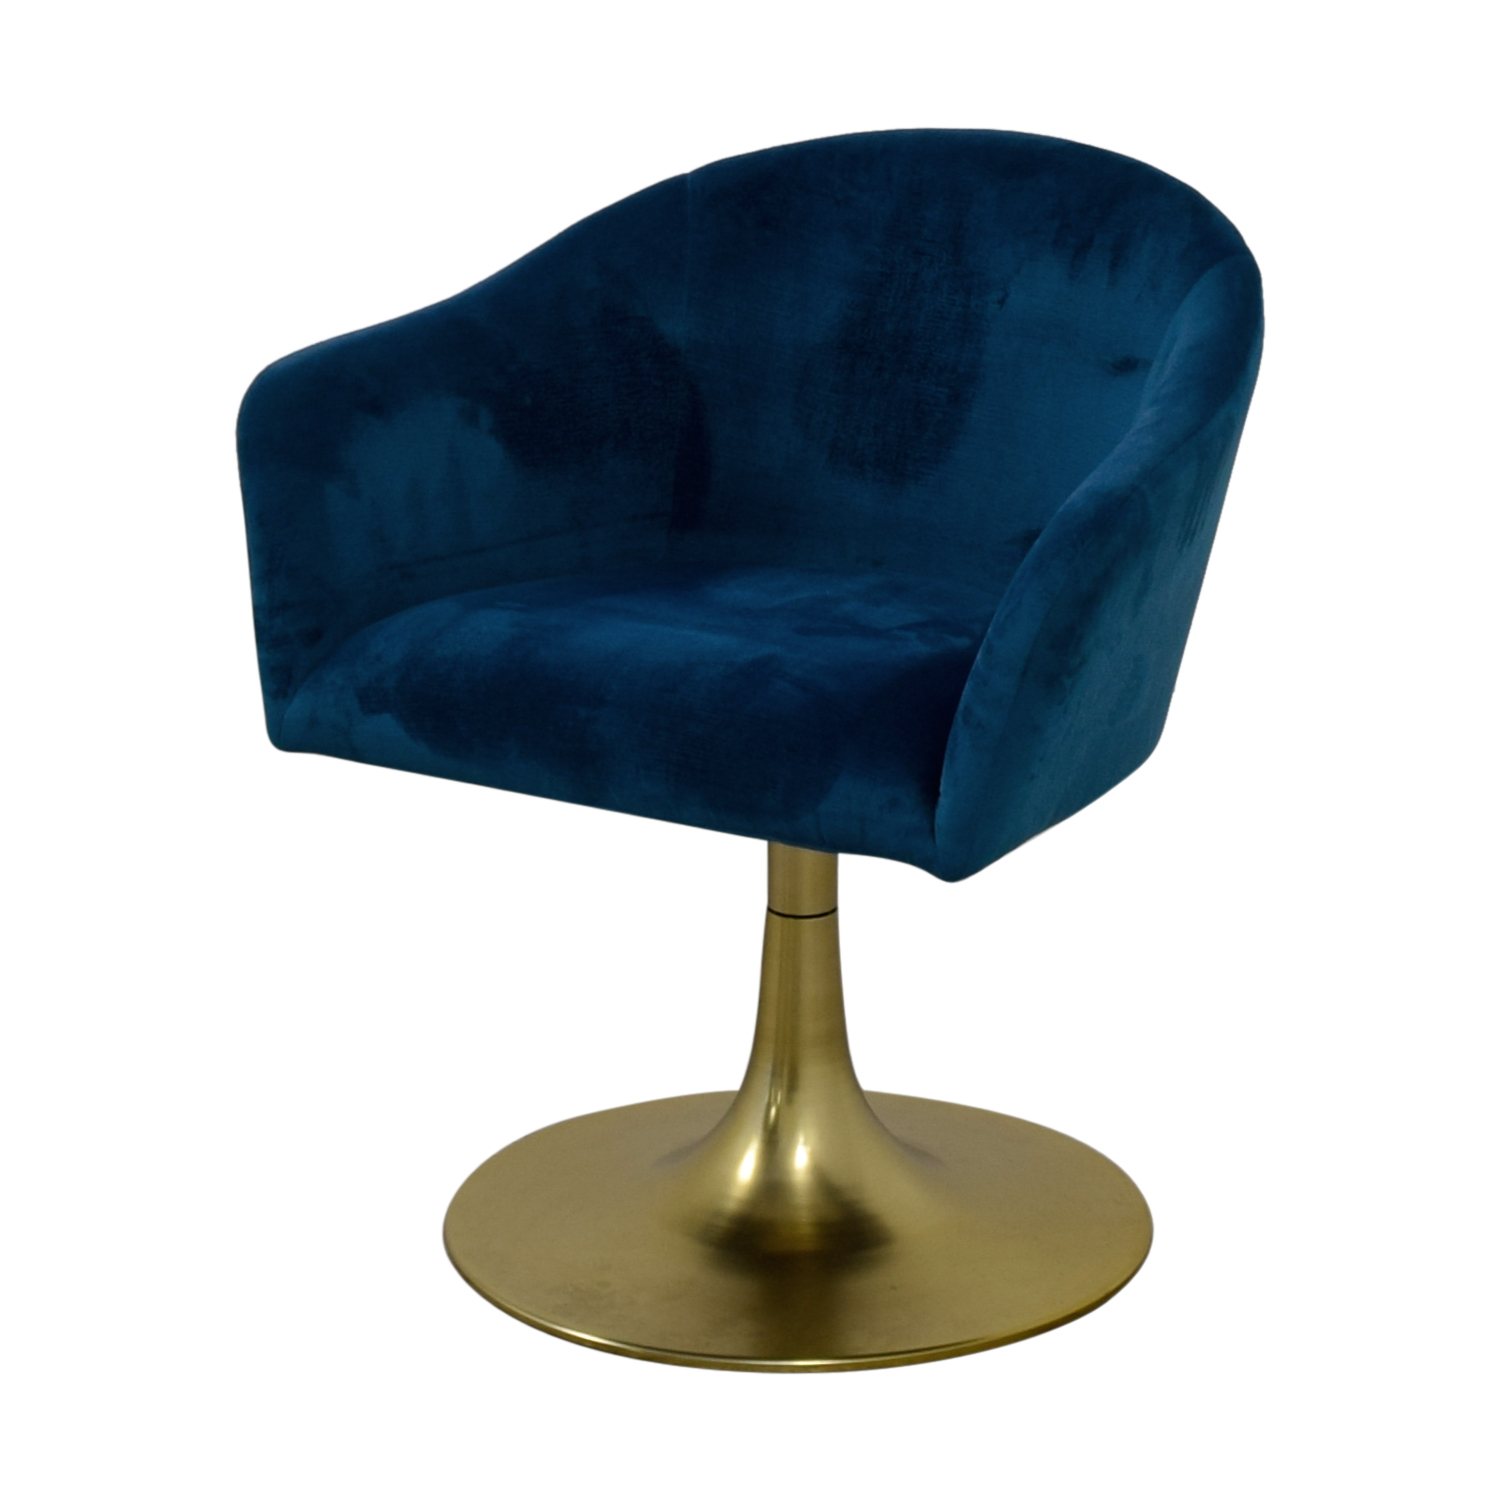 West Elm West Elm Bond Blue Velvet Swivel Chair coupon